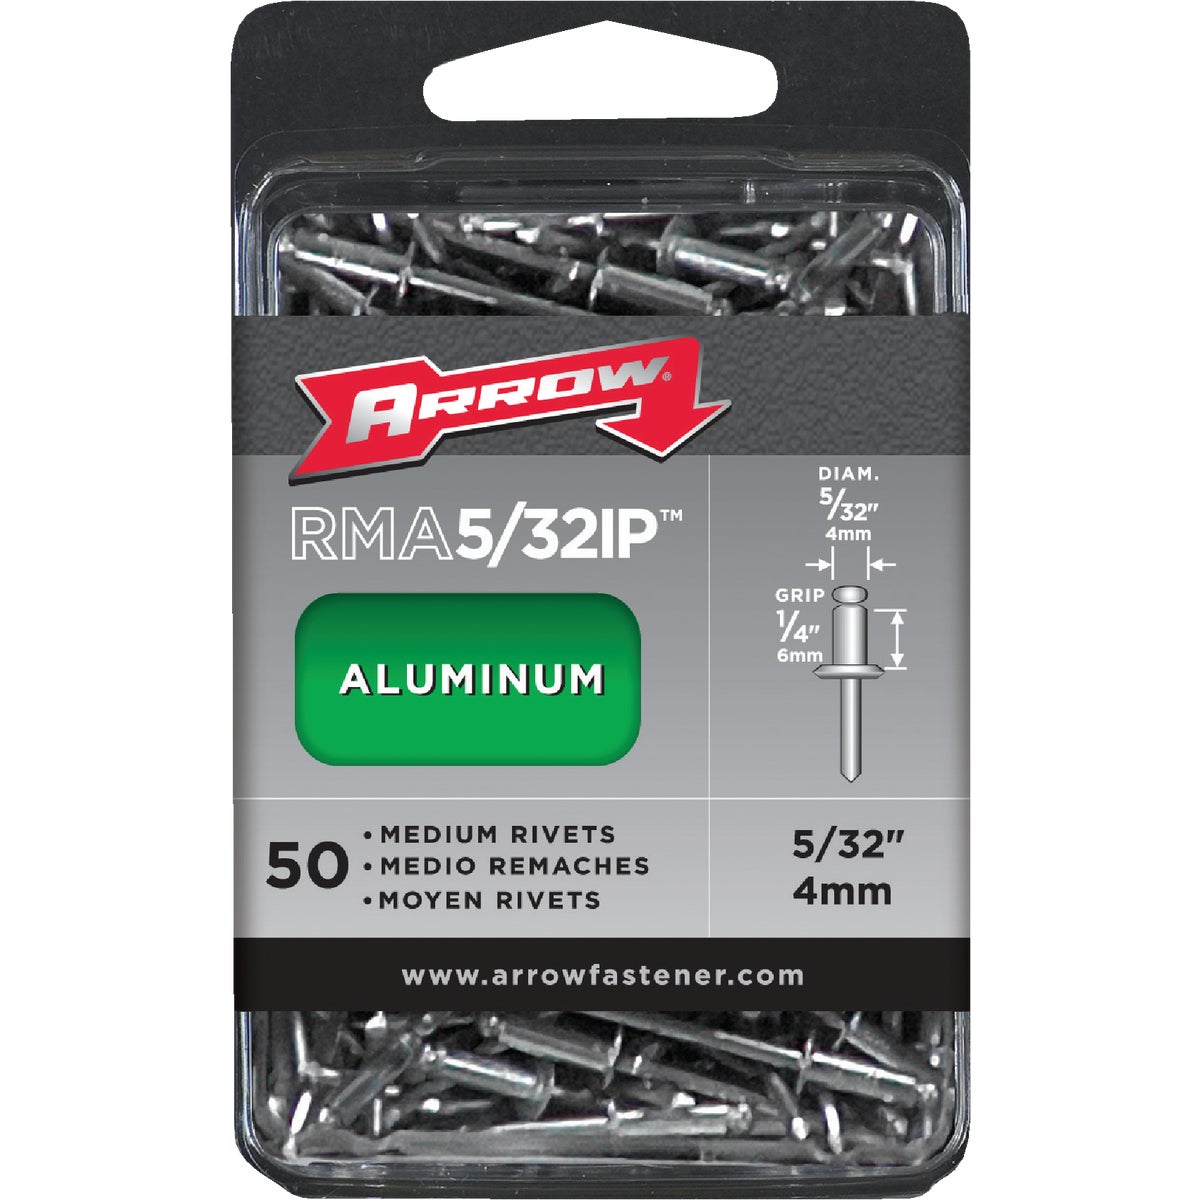 5/32X1/4 ALUM RIVET - RMA5/32IP by Arrow Fastener Co